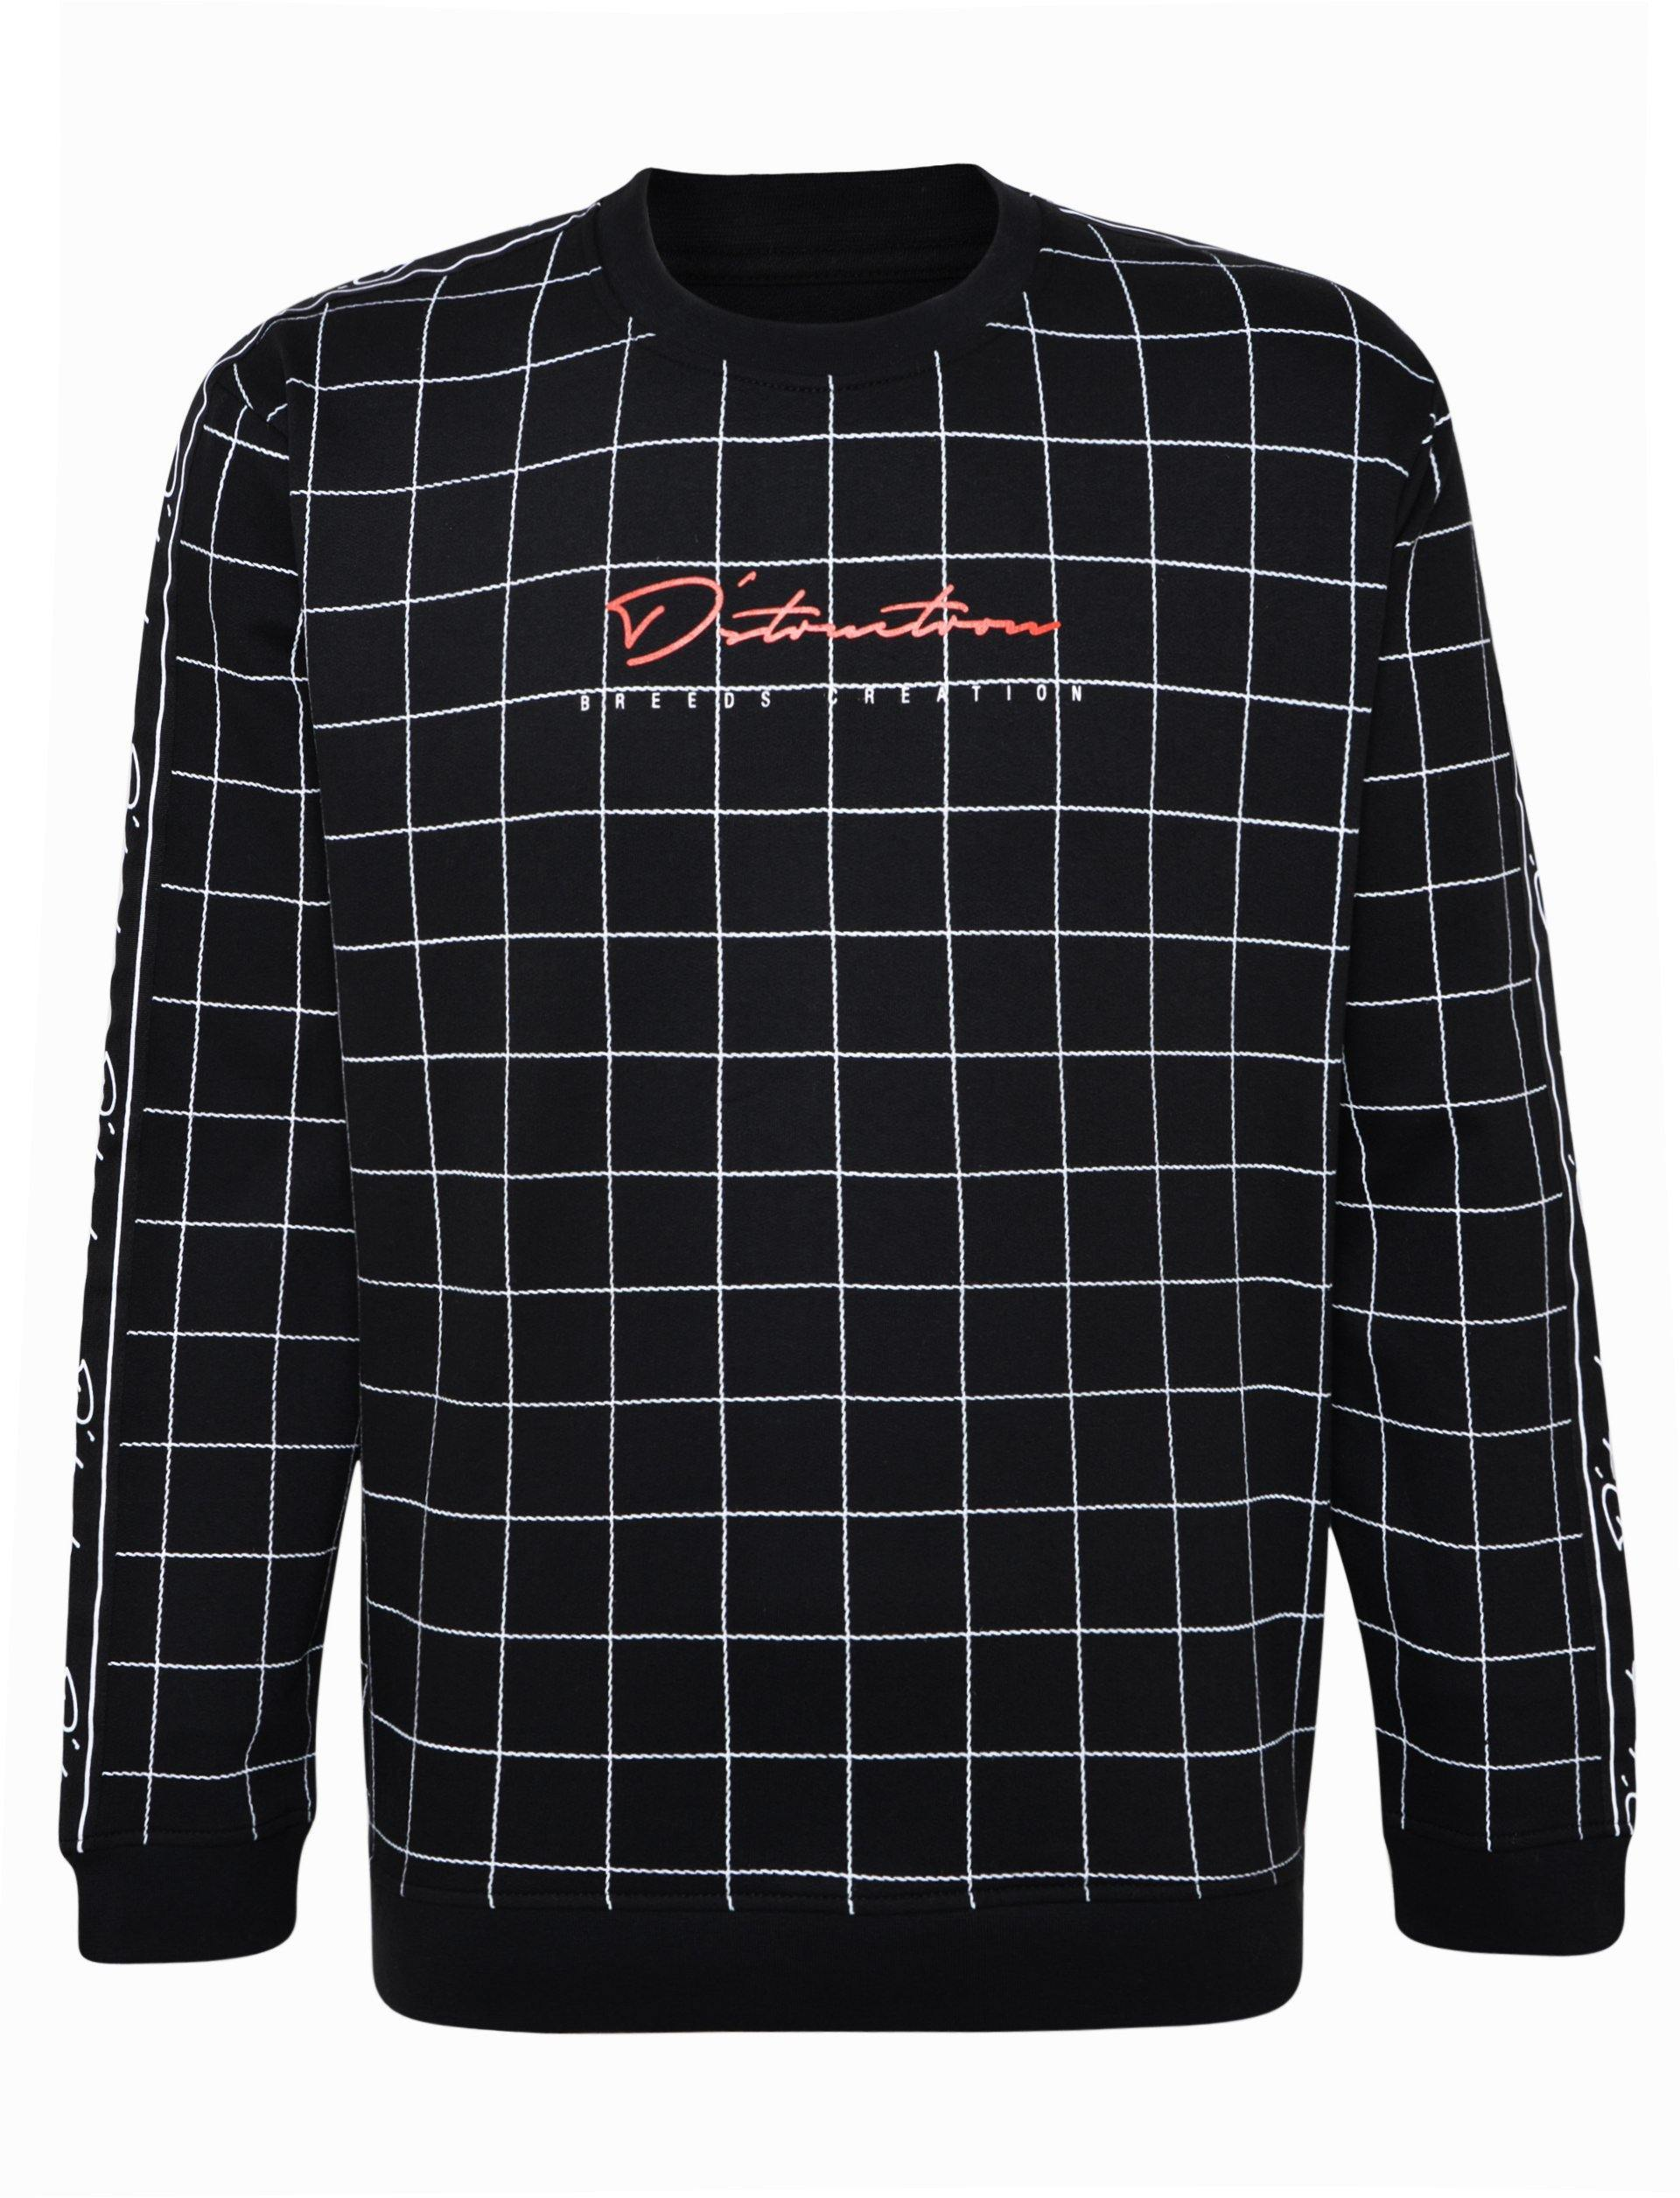 Grid Sweater Black